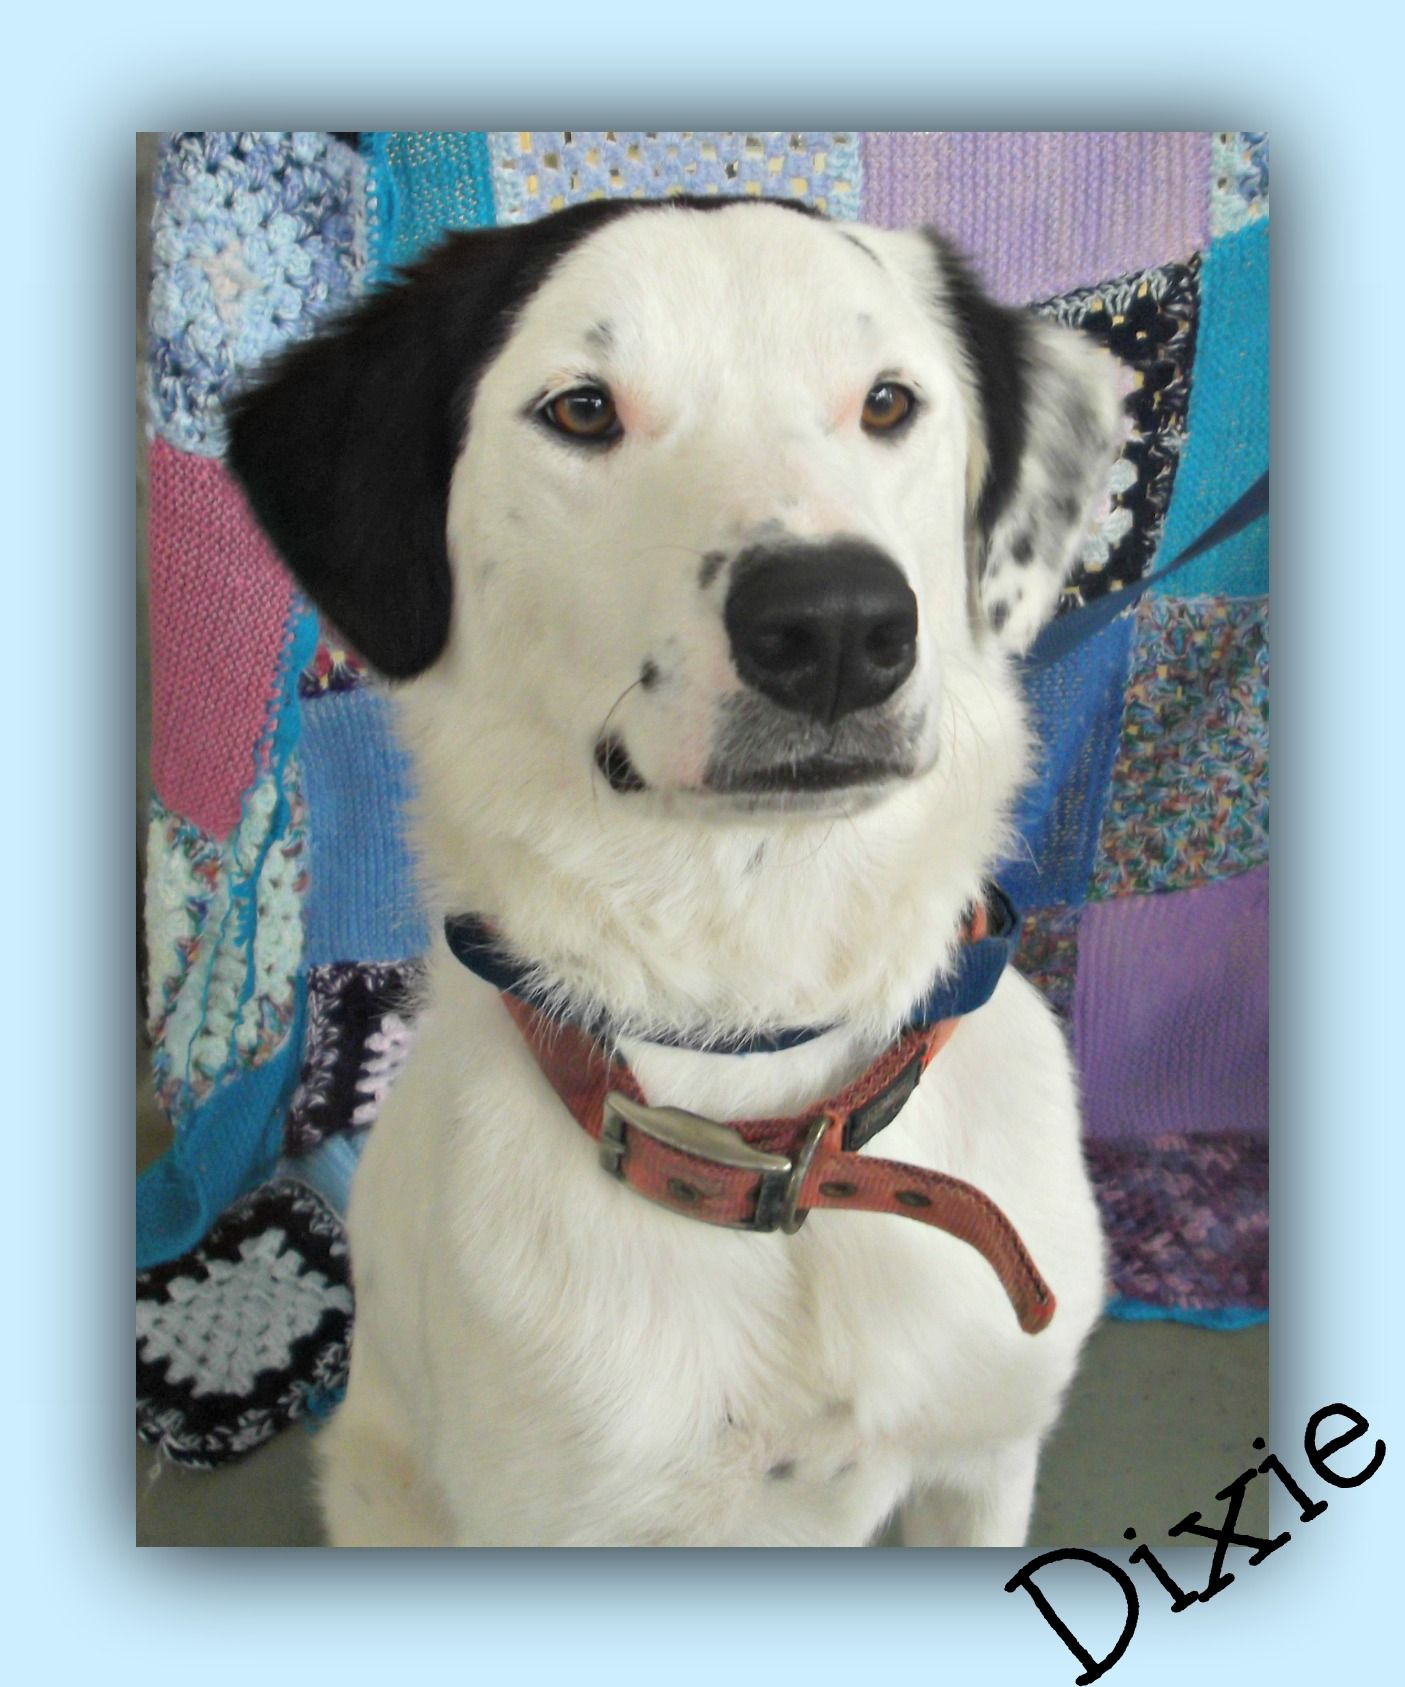 Dixie Here Was Born At The Gympie Rspca Animal Care Centre She